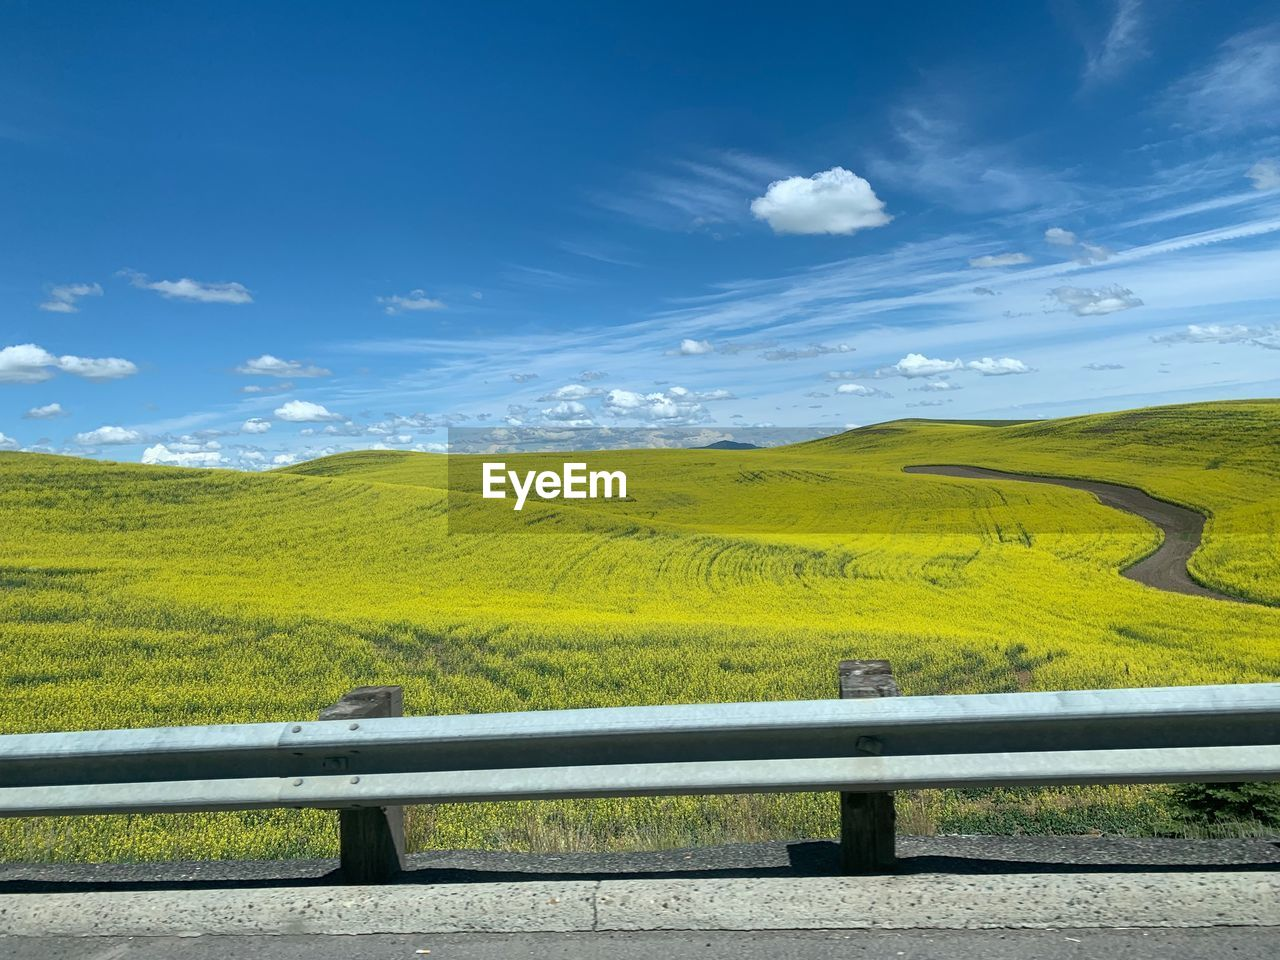 scenics - nature, environment, sky, beauty in nature, landscape, cloud - sky, tranquil scene, railing, tranquility, non-urban scene, nature, day, no people, field, plant, land, green color, barrier, road, idyllic, outdoors, crash barrier